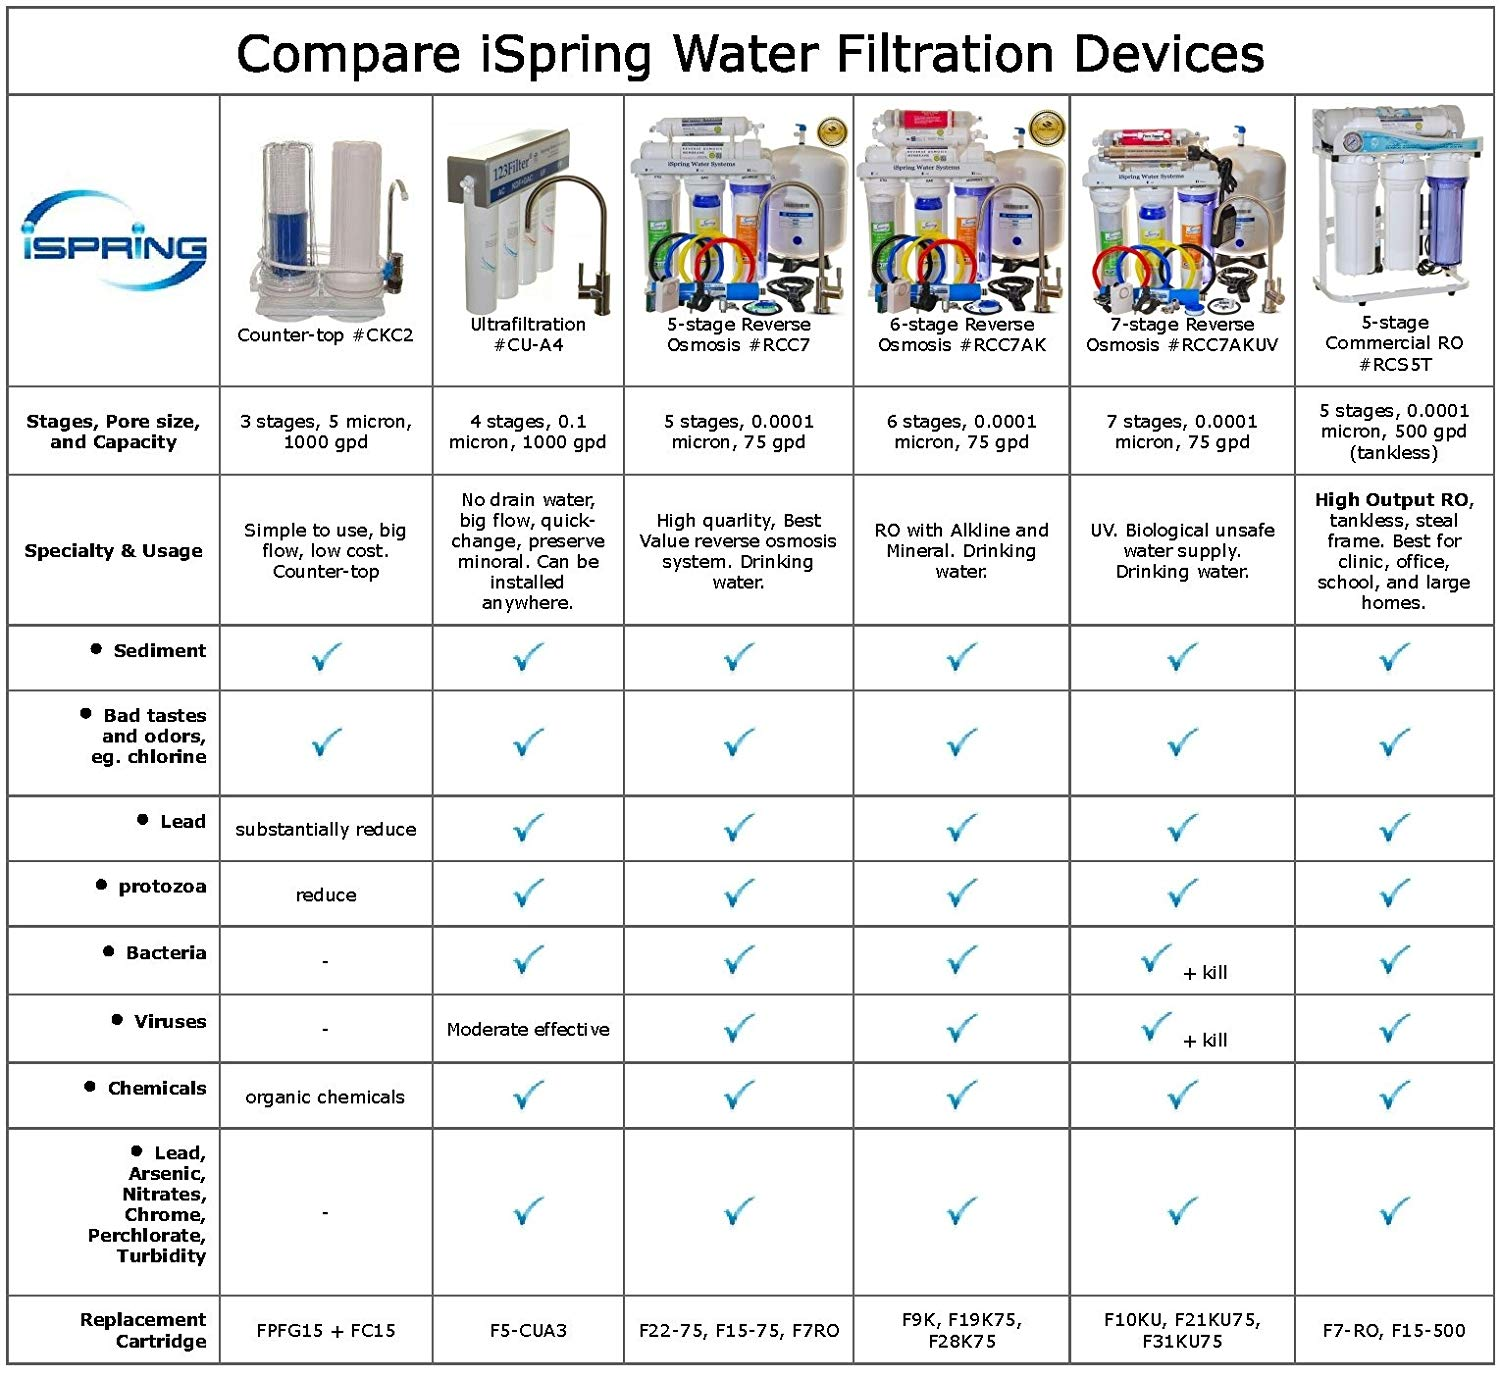 iSpring Water Filtration Systems